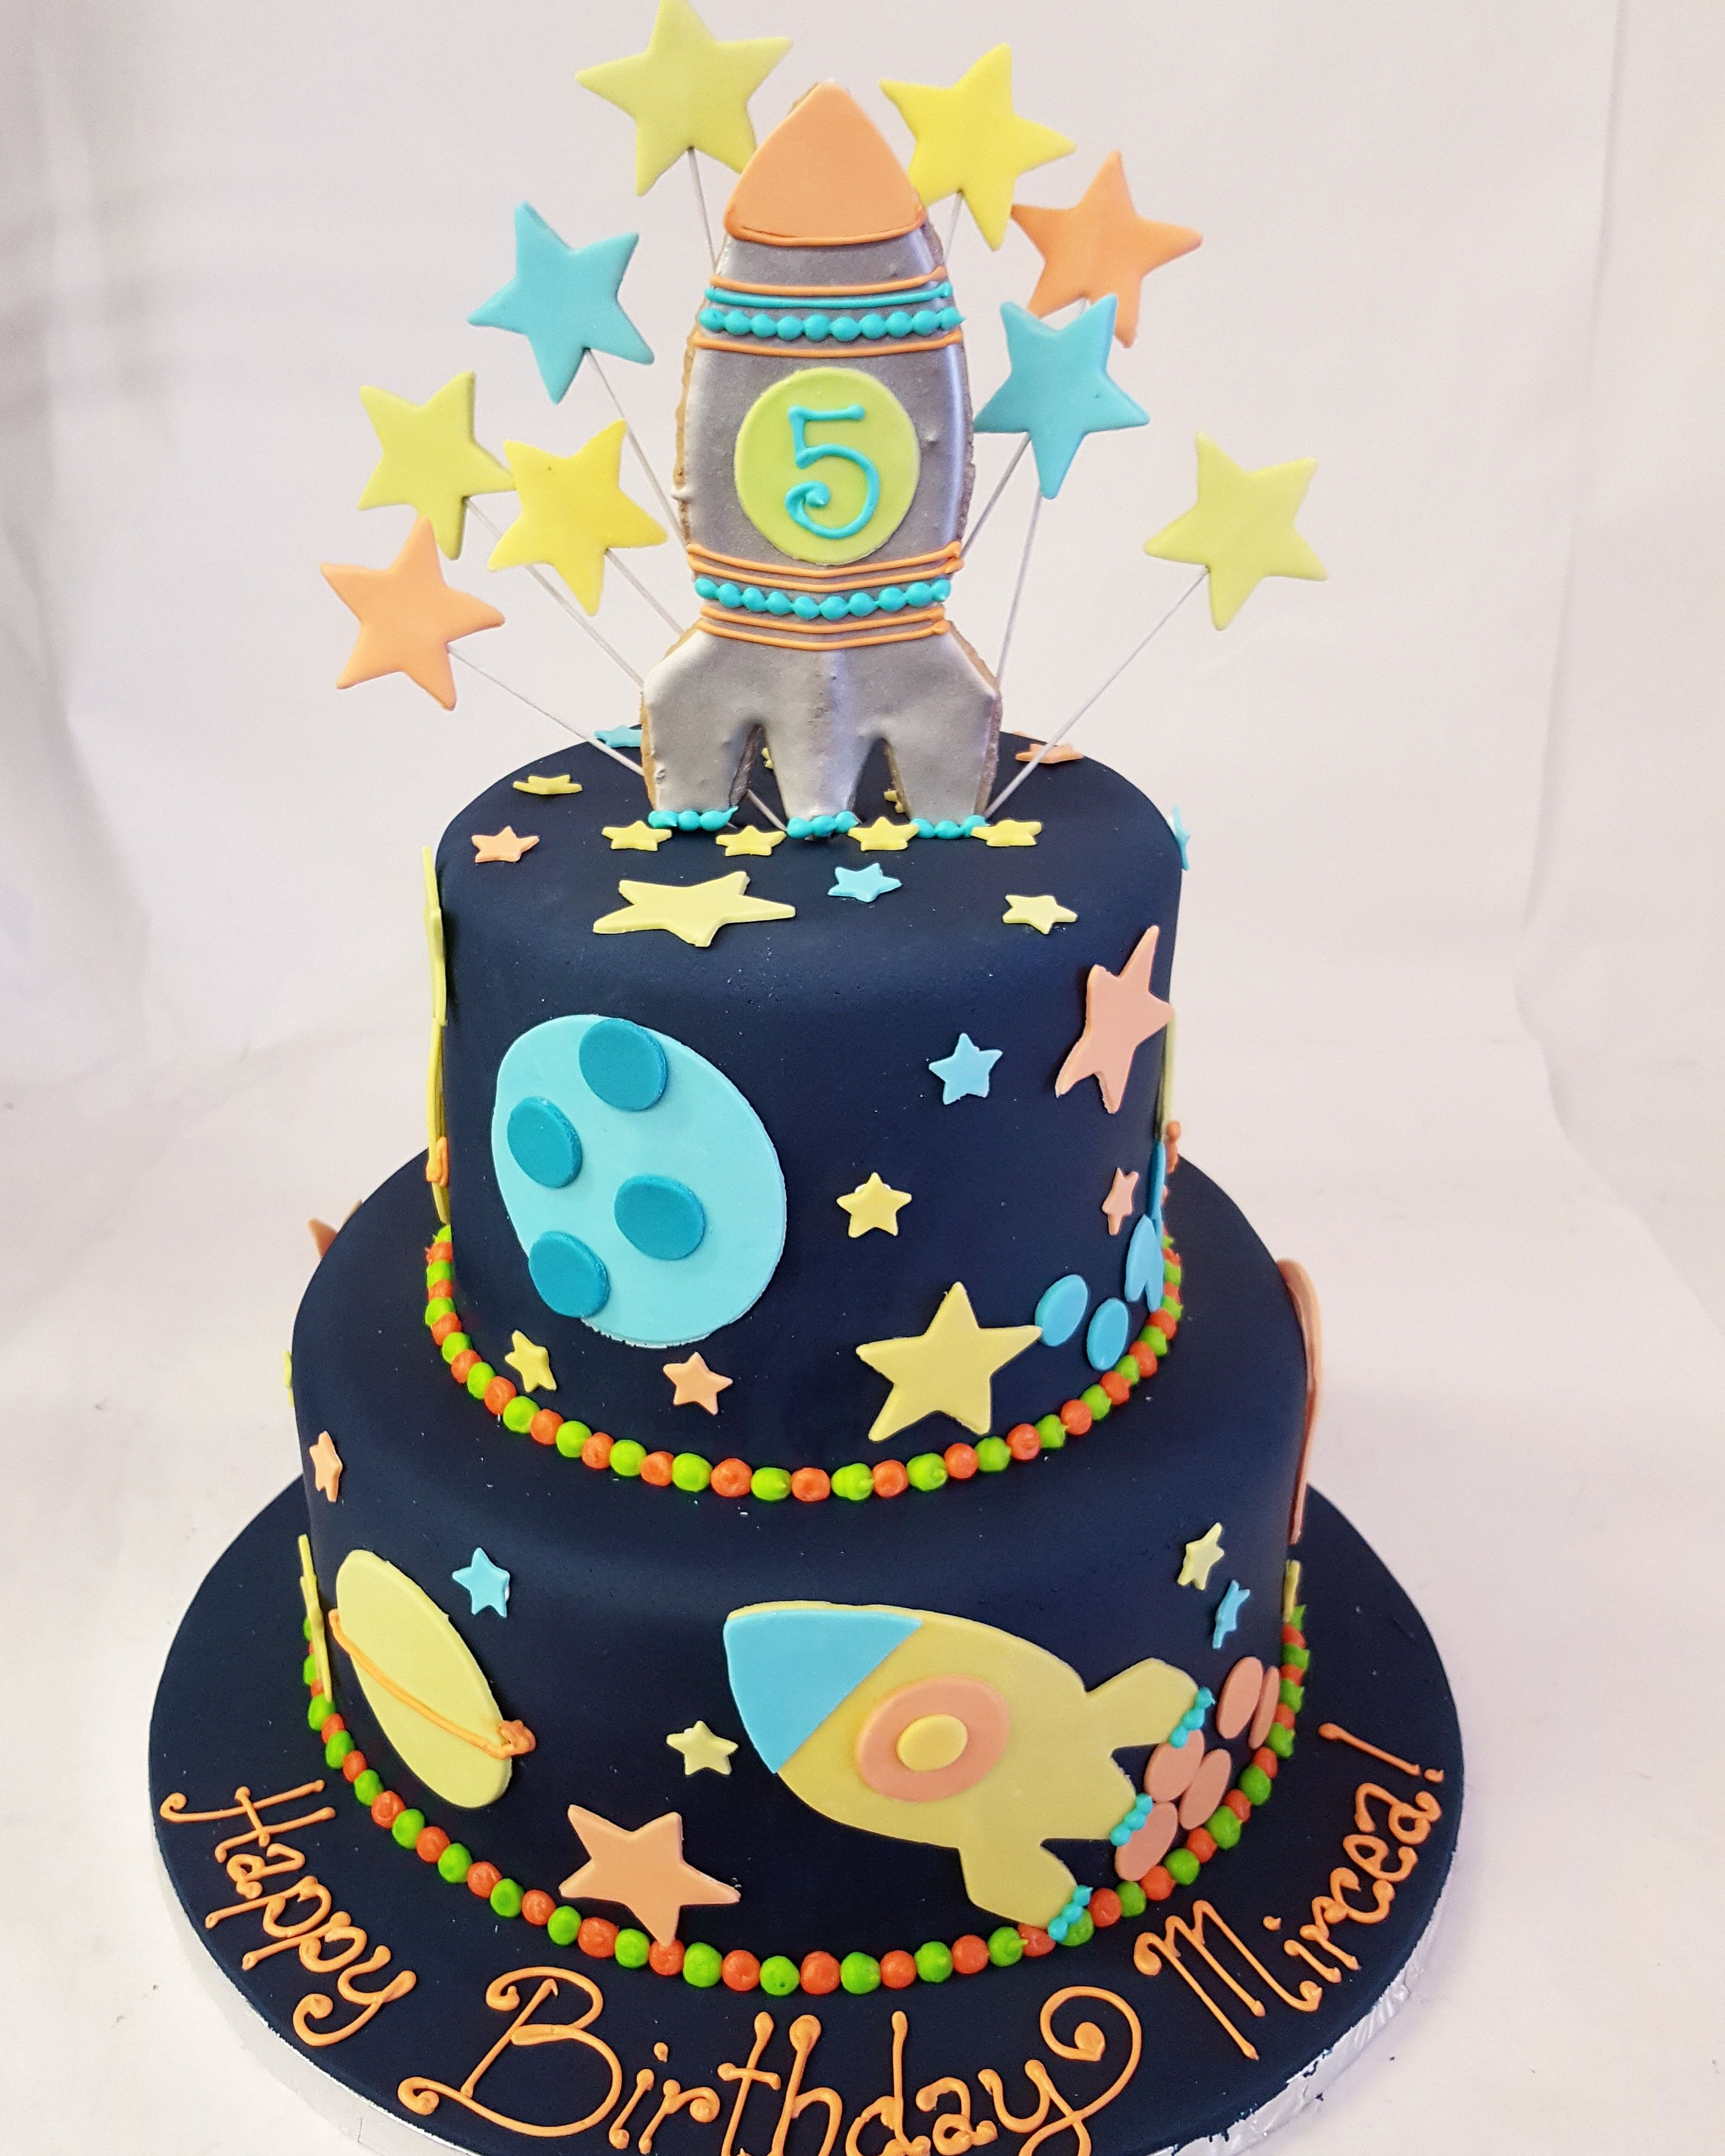 Swell Edible Space This Space Cake Is Out Of This World With Images Funny Birthday Cards Online Unhofree Goldxyz